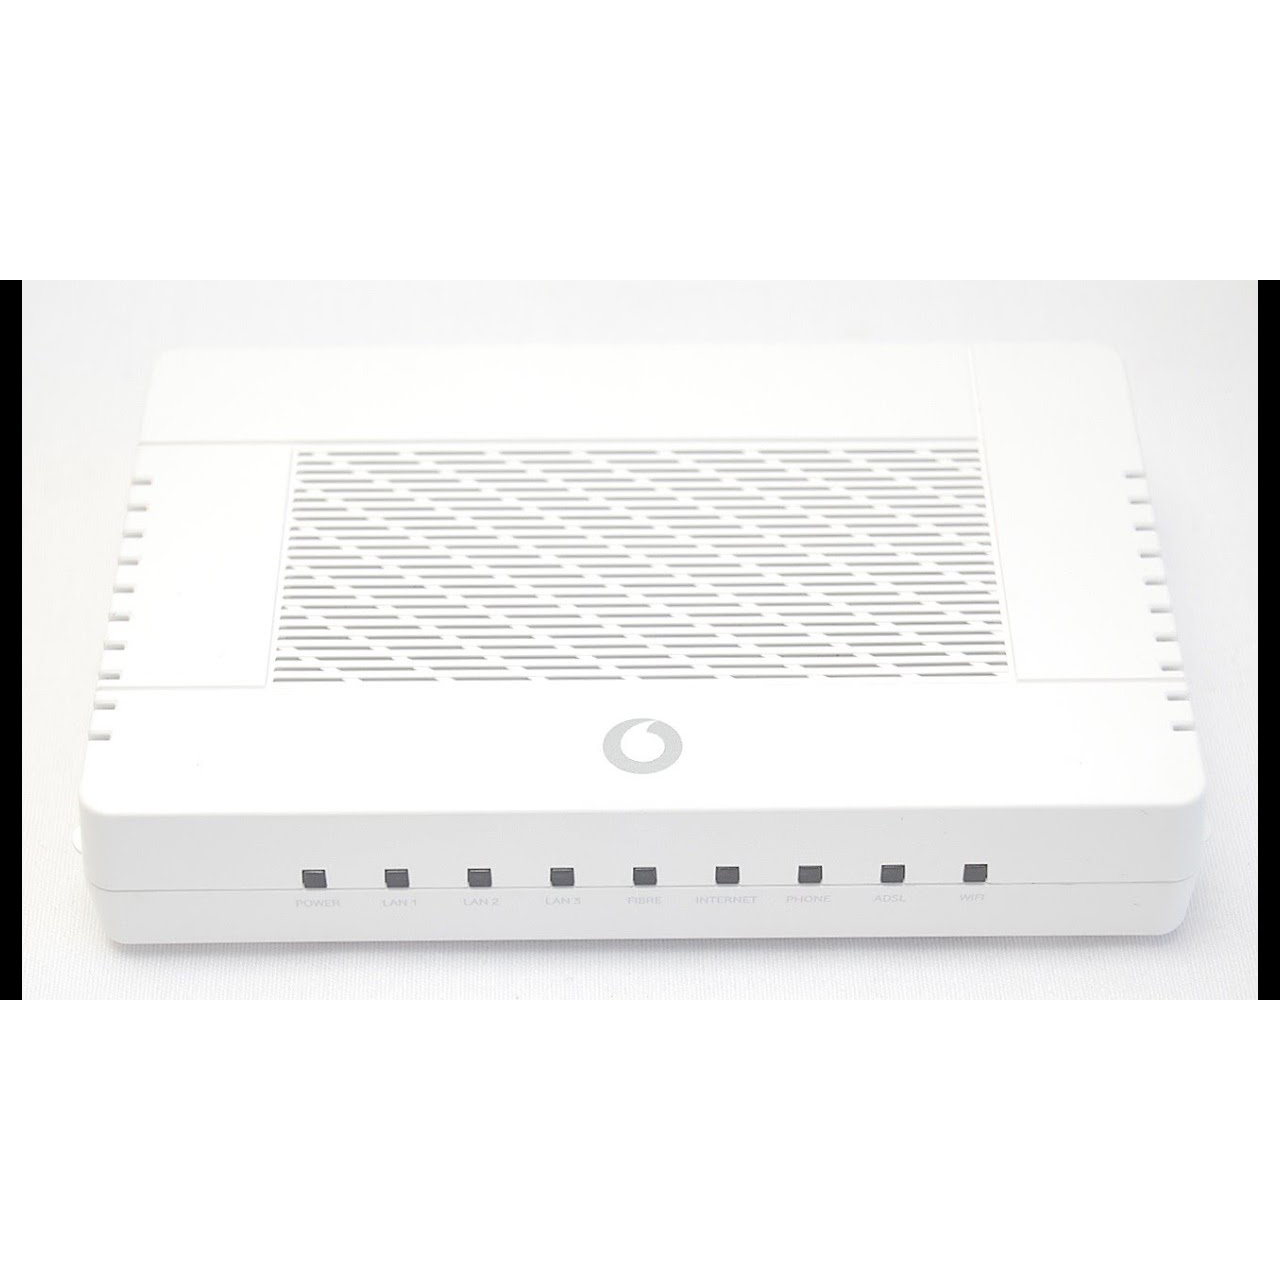 ADSL2 + MODEM+ROUTER+4PORTS+1 ACCESSPOINT WIRELESS-N 300N VODAFONE BRA14NR  2 INTERNAL ANTENNA ,ADSL Routers